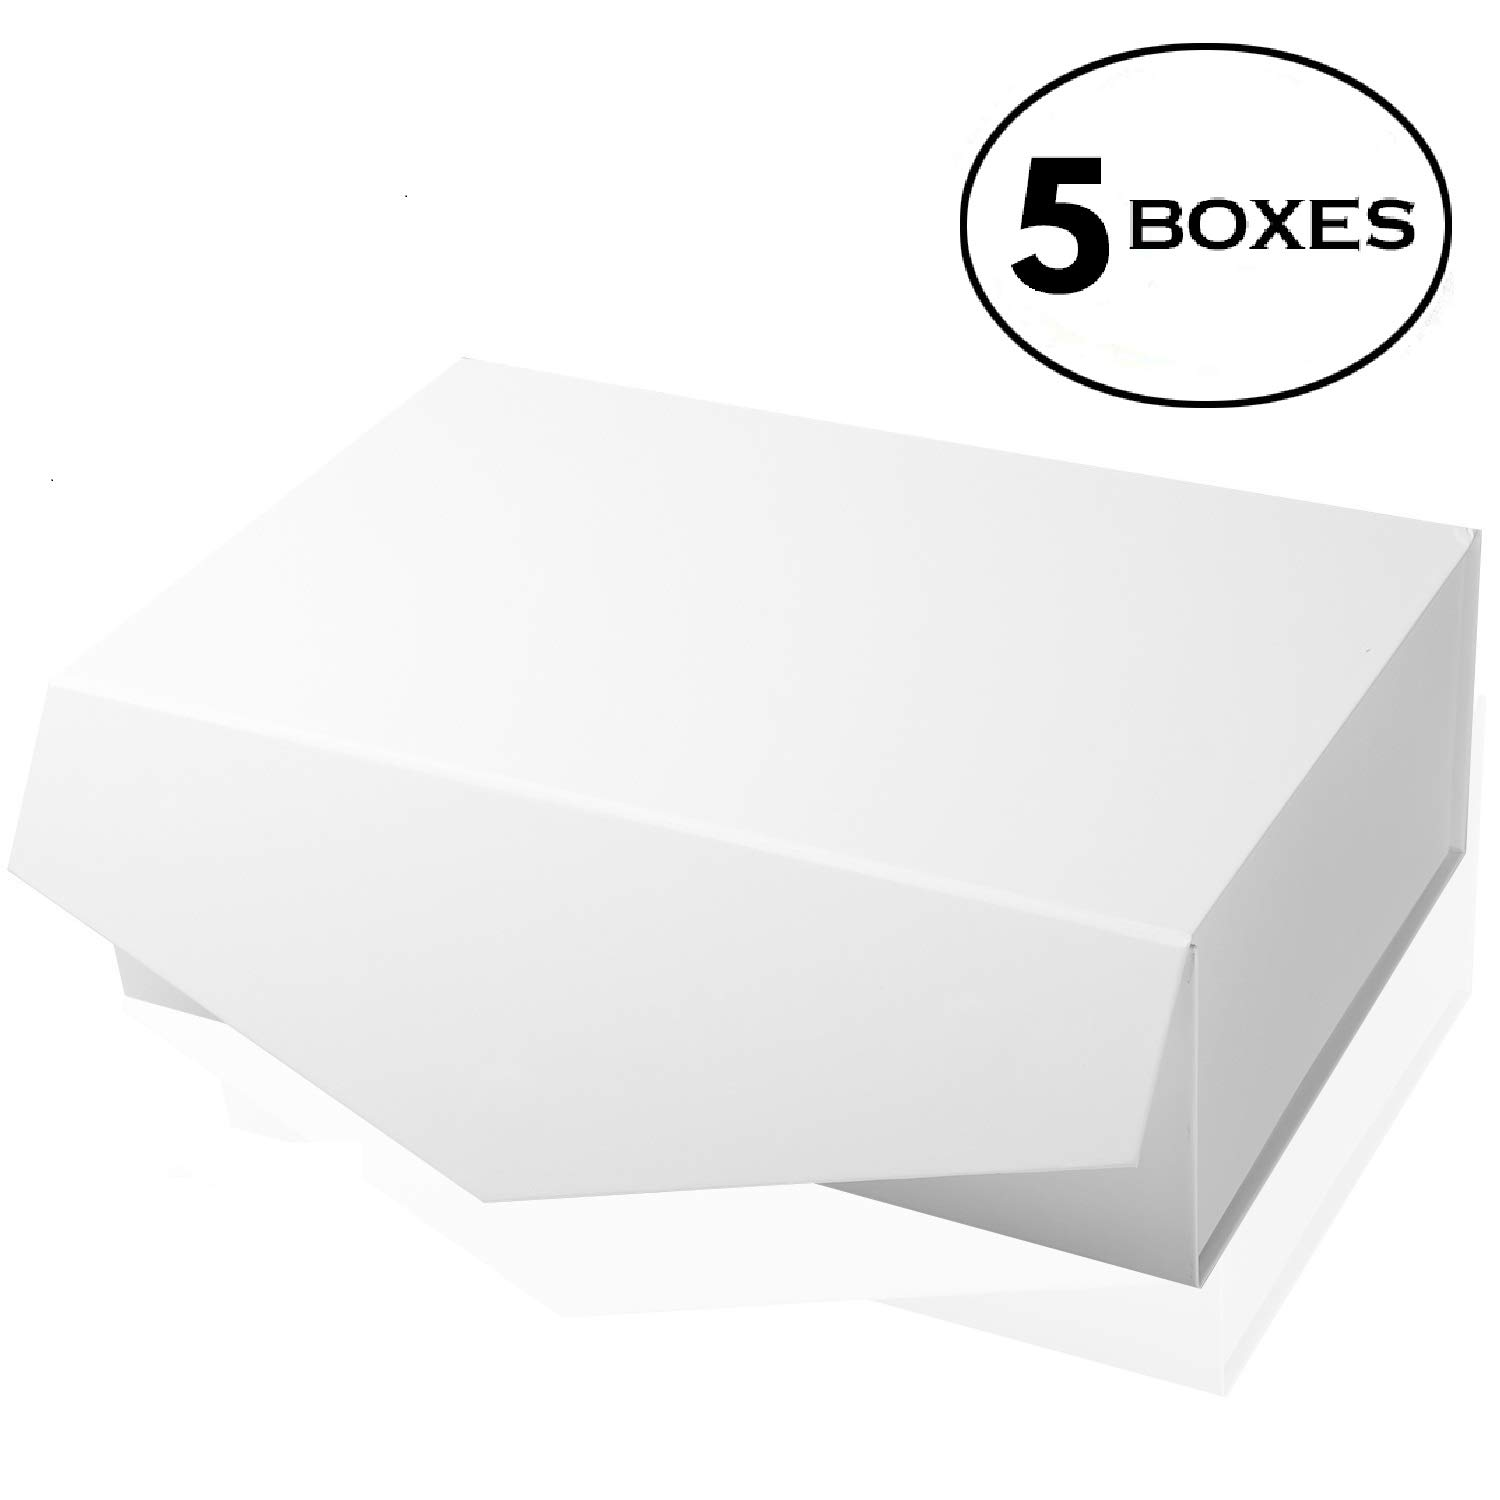 [Yeden] Large Gift Box | 5 Luxury Boxes | Collapsible Magnetic Closure | Durable Storage Box (14'' x 9'' x 4.5'')